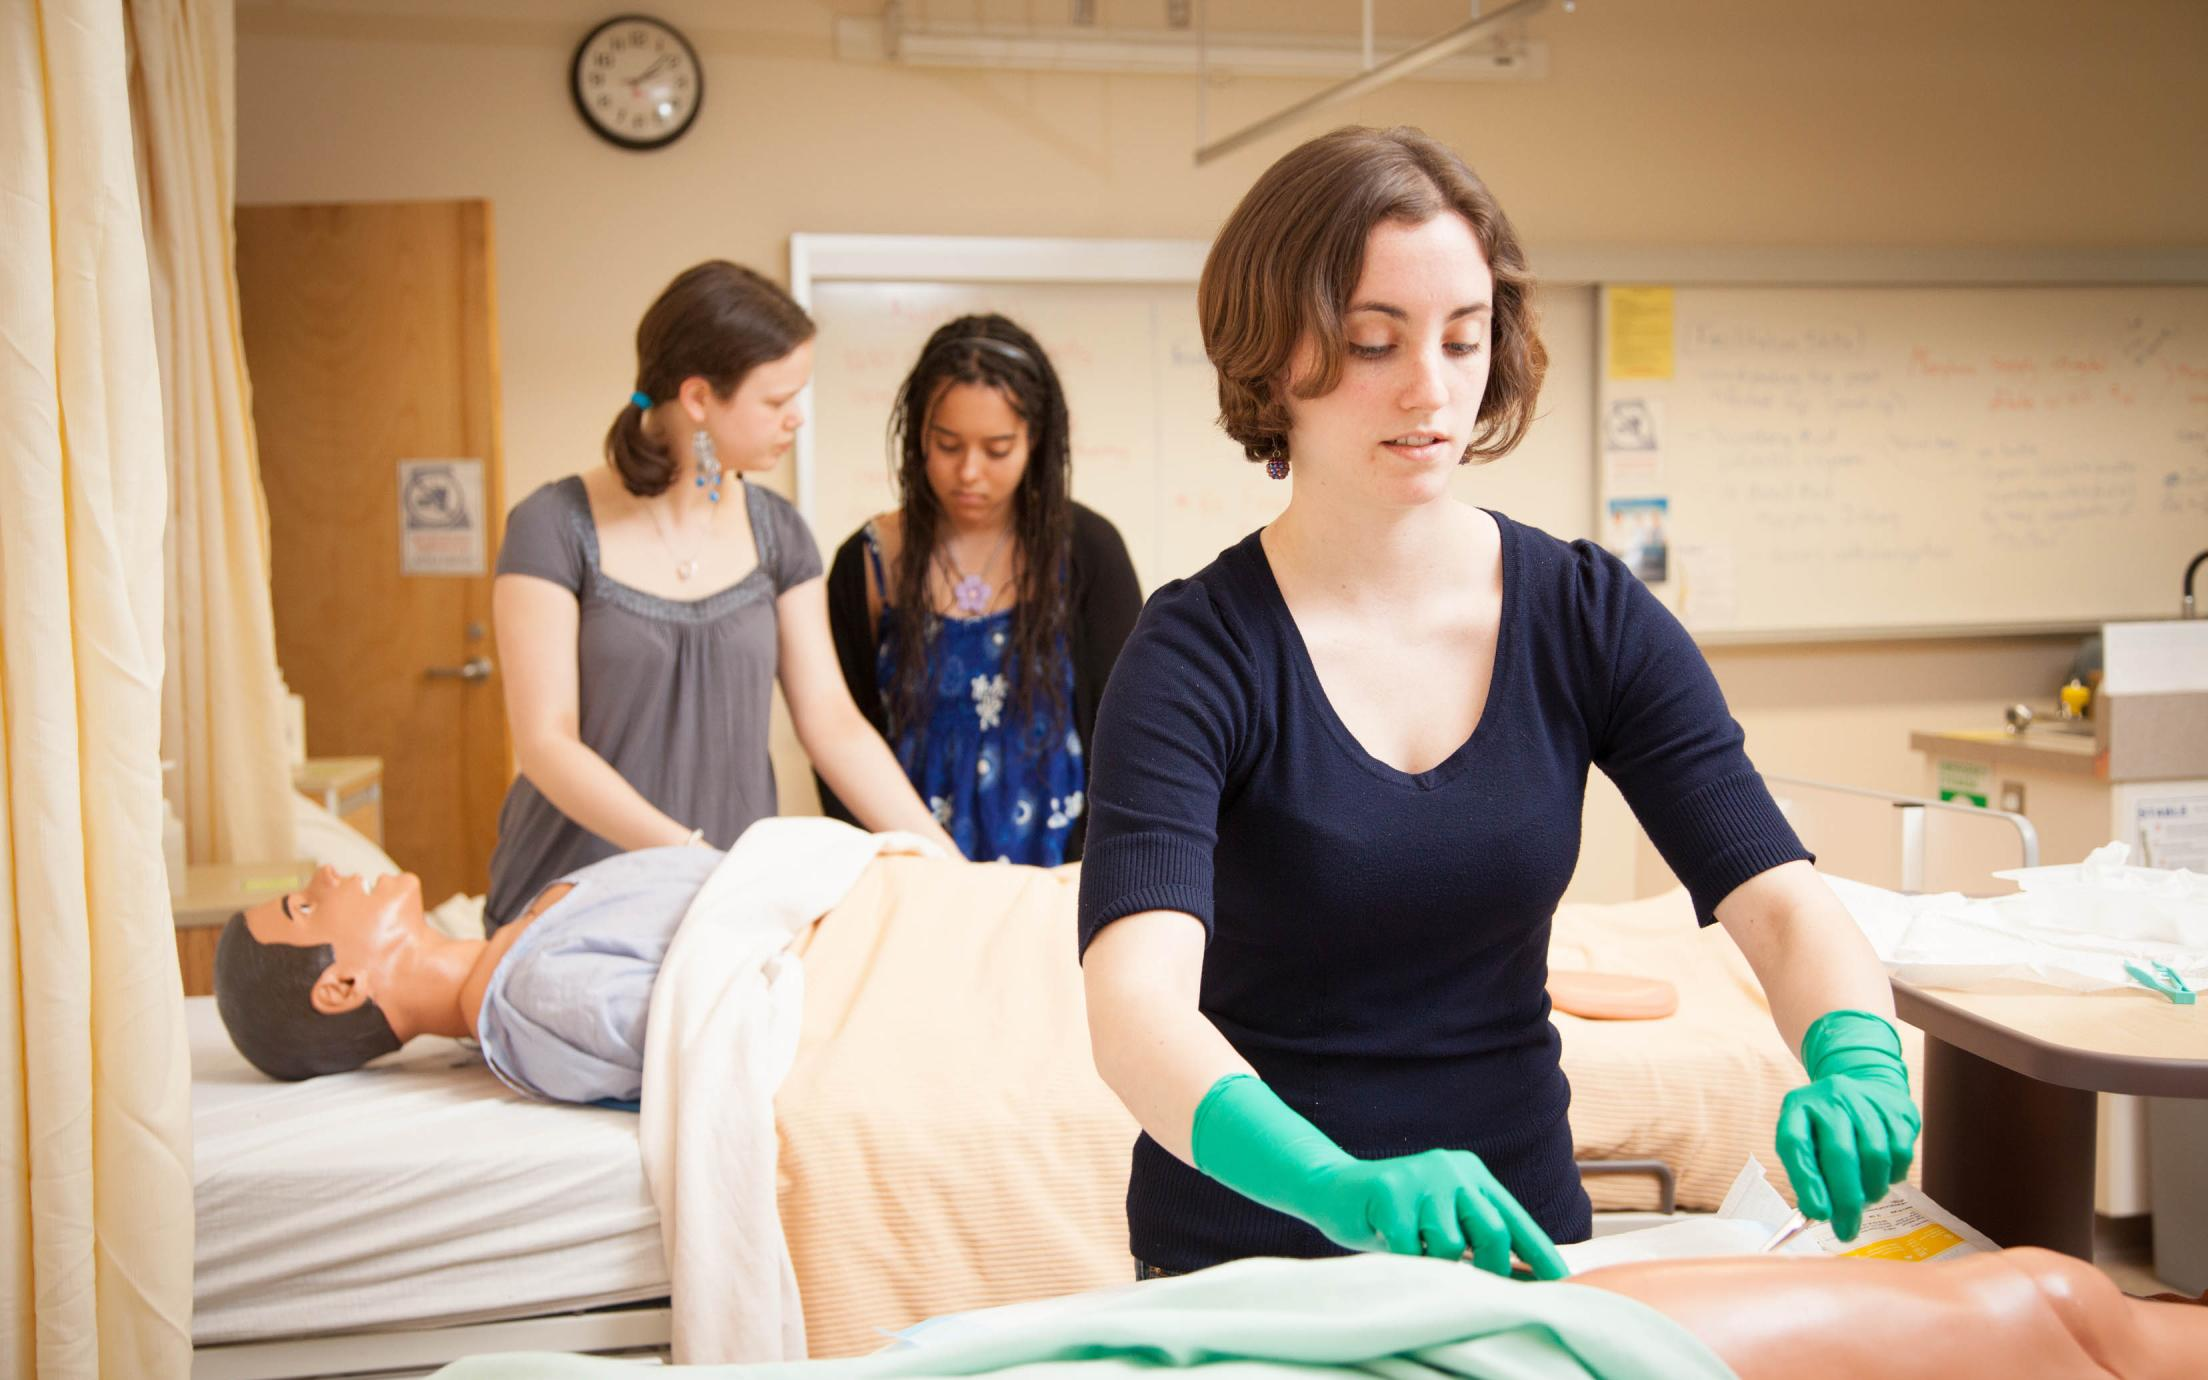 A student of the LPN program in BC examining a torso model